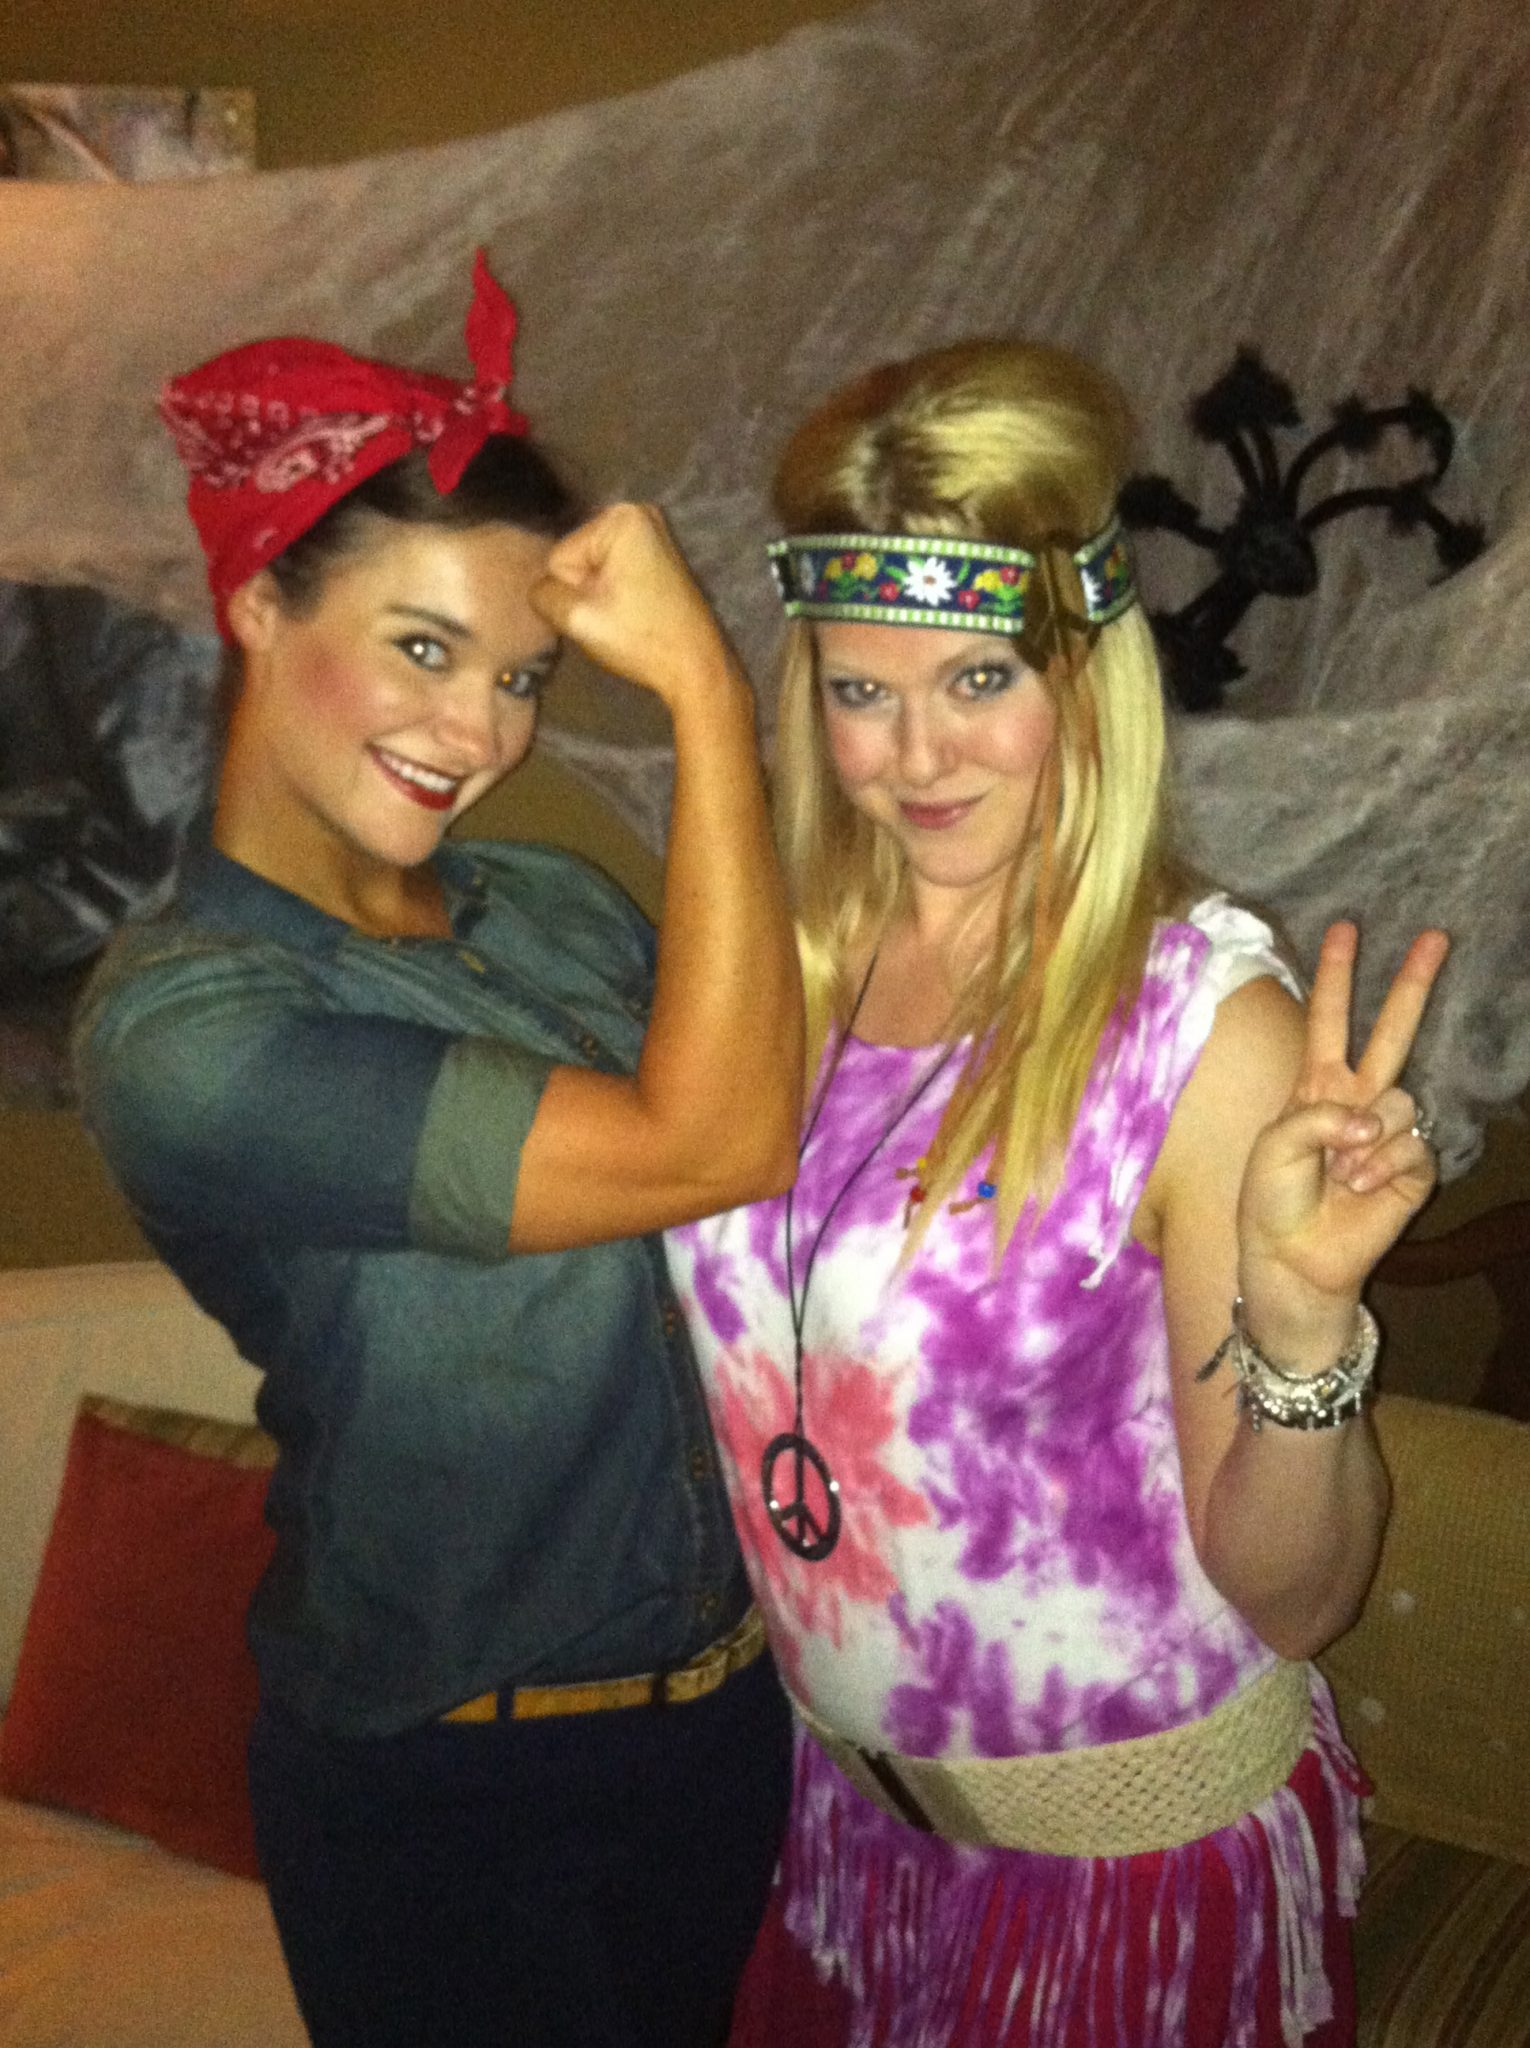 affordable halloween costume ideas rosie the riveter and hippie - Rosie The Riveter Halloween Costume